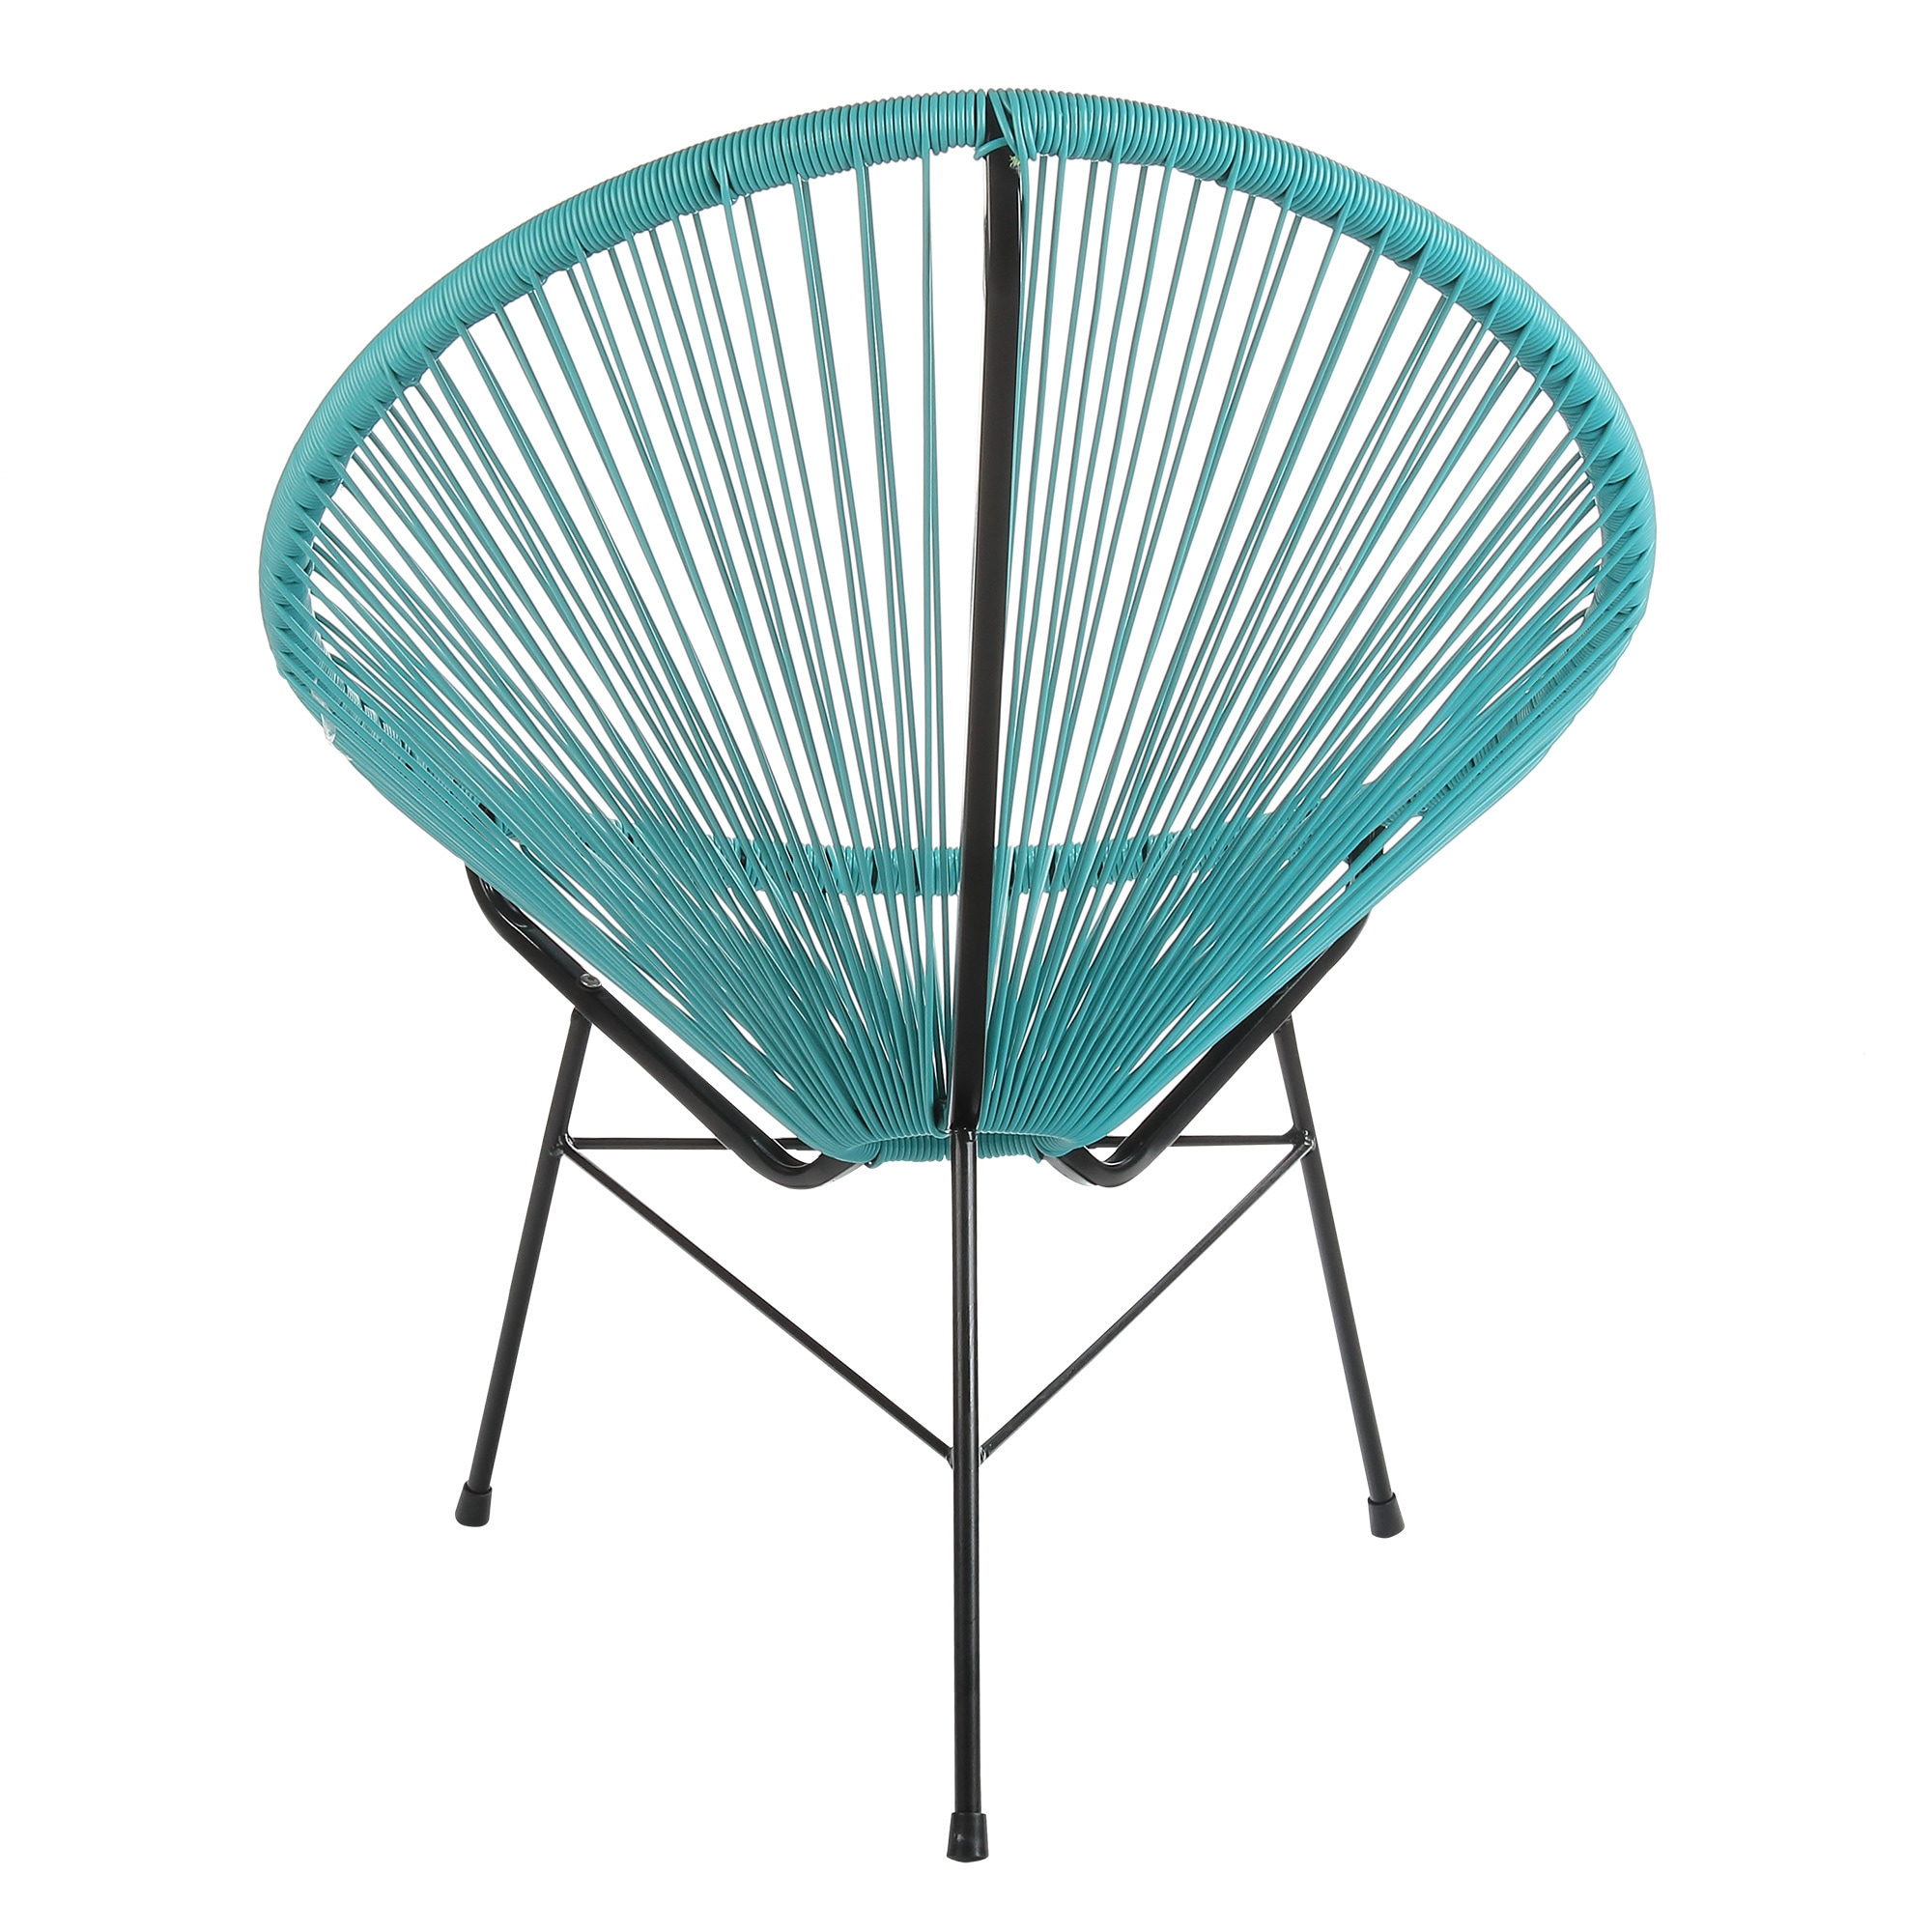 turquoise lounge chair outside chaise chairs shop joseph allen acapulco blue vinyl steel indoor outdoor patio on sale free shipping today overstock com 19458950